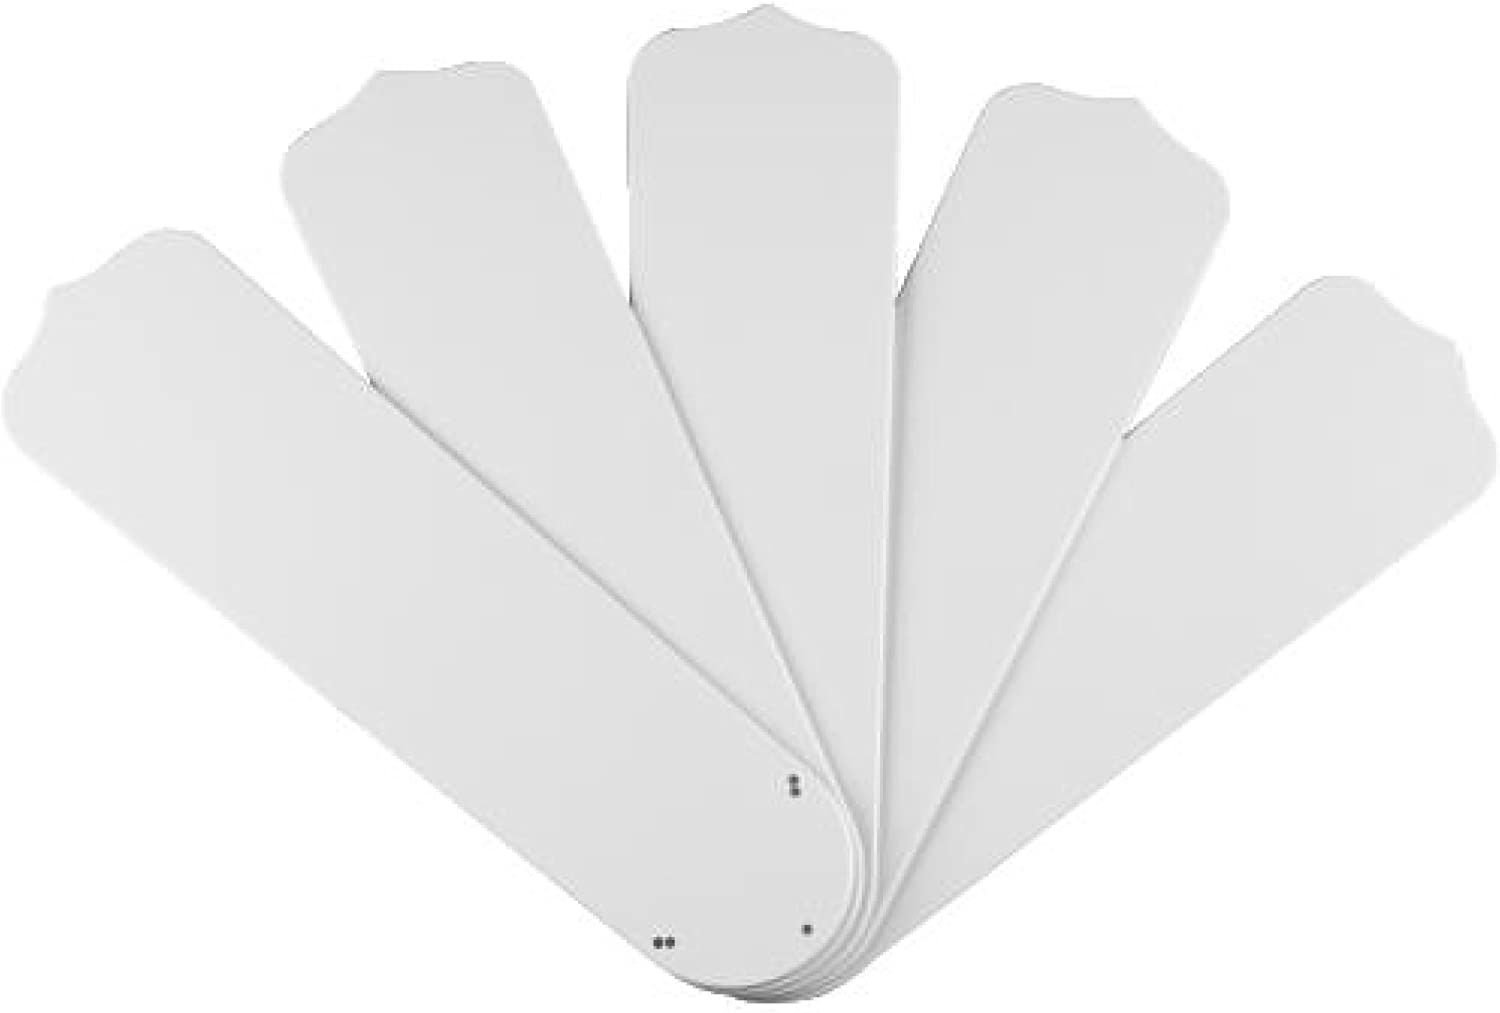 Westinghouse Lighting 7741400 52 Inch White Outdoor Replacement Fan Blades Five Pack Ceiling Fan Replacement Blades